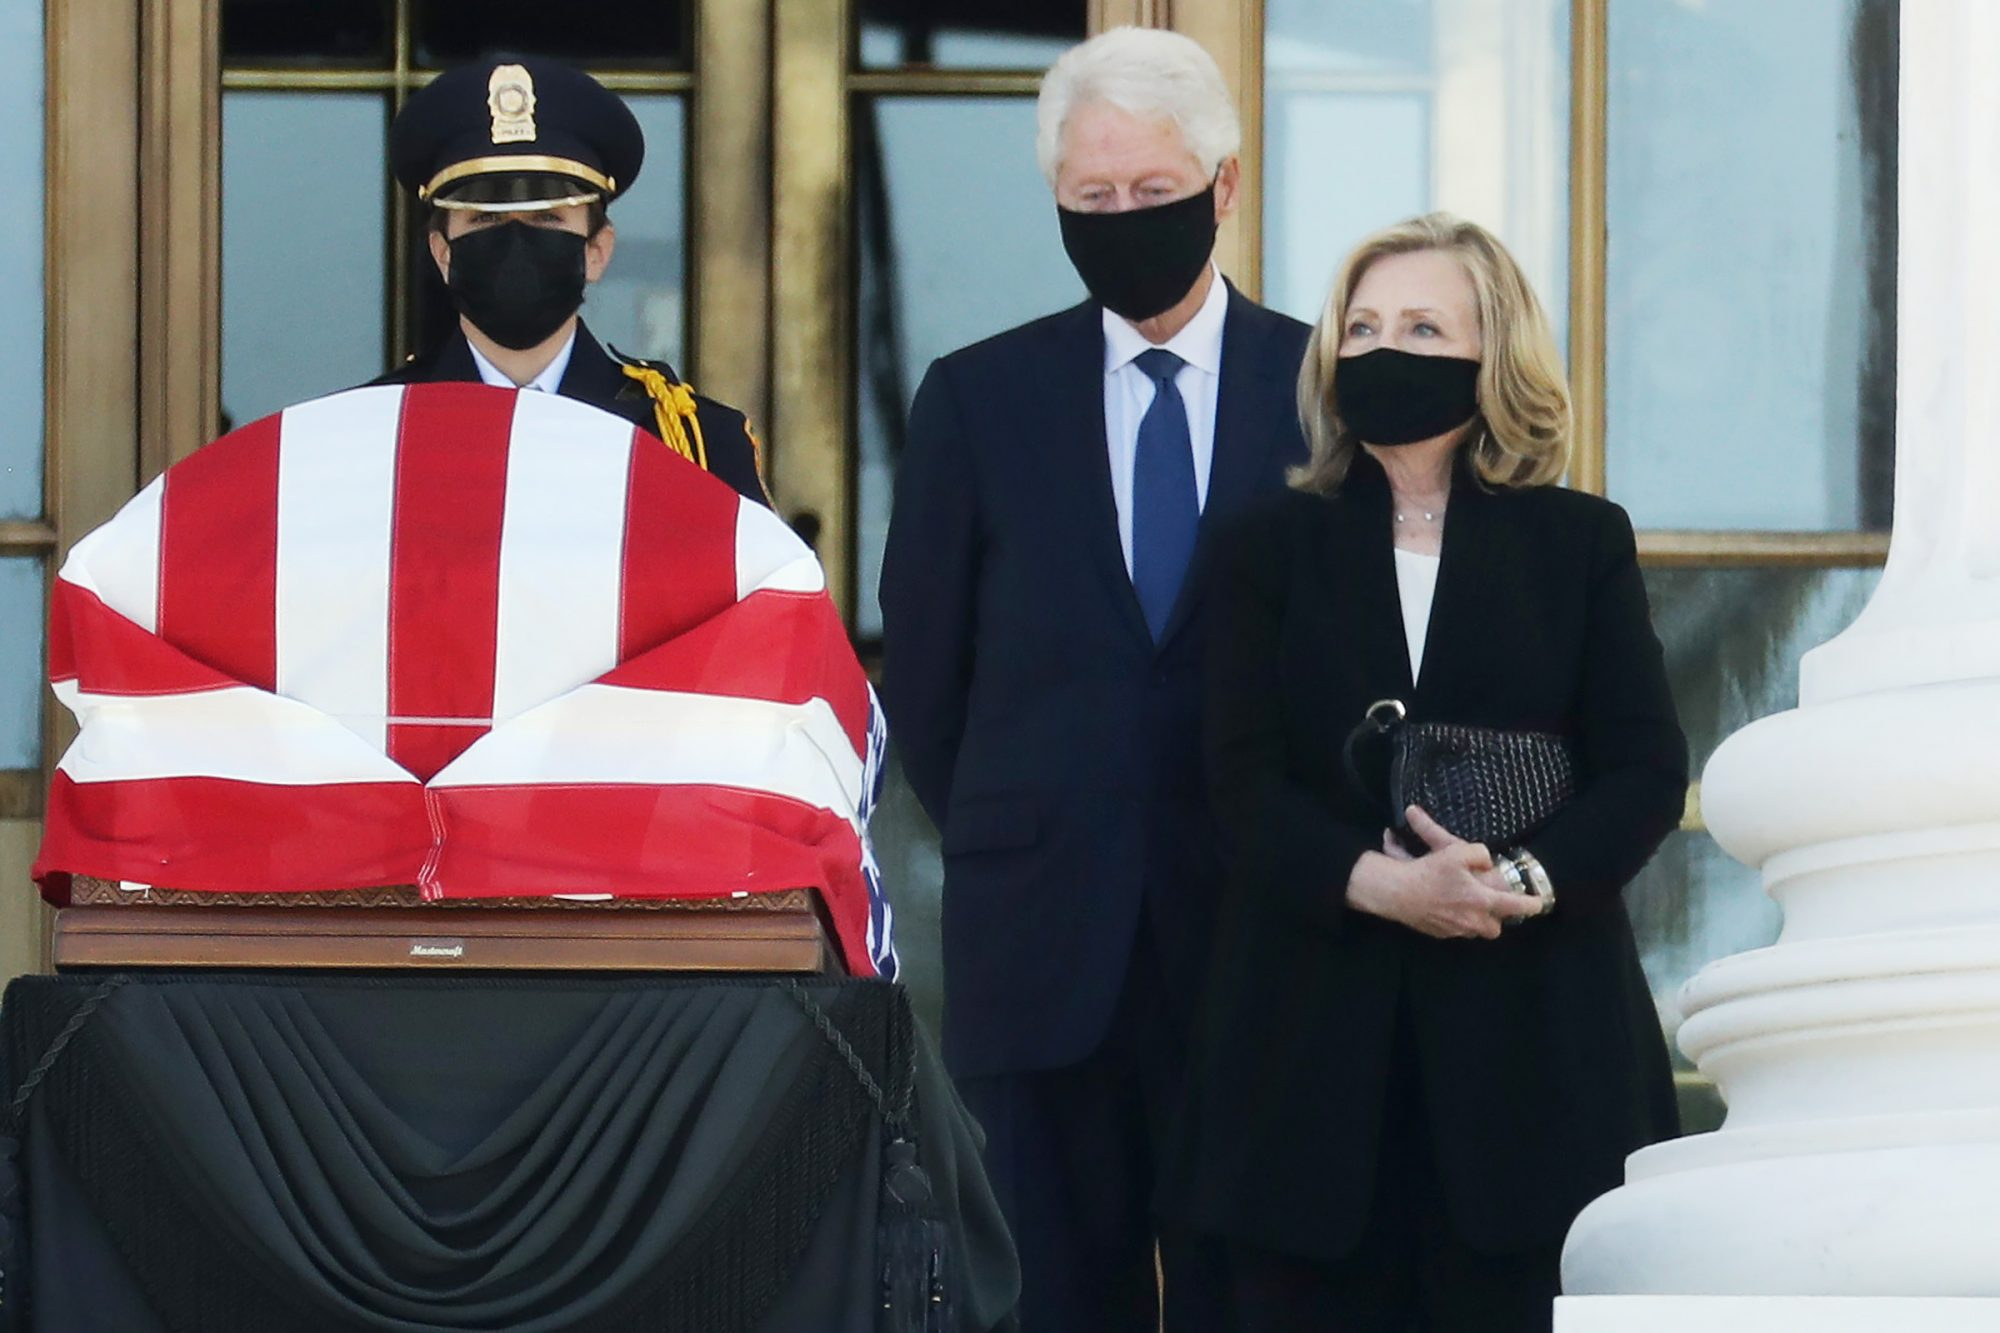 Former President Bill Clinton and former Secretary of State Hillary Clinton pay respects as Justice Ruth Bader Ginsburg